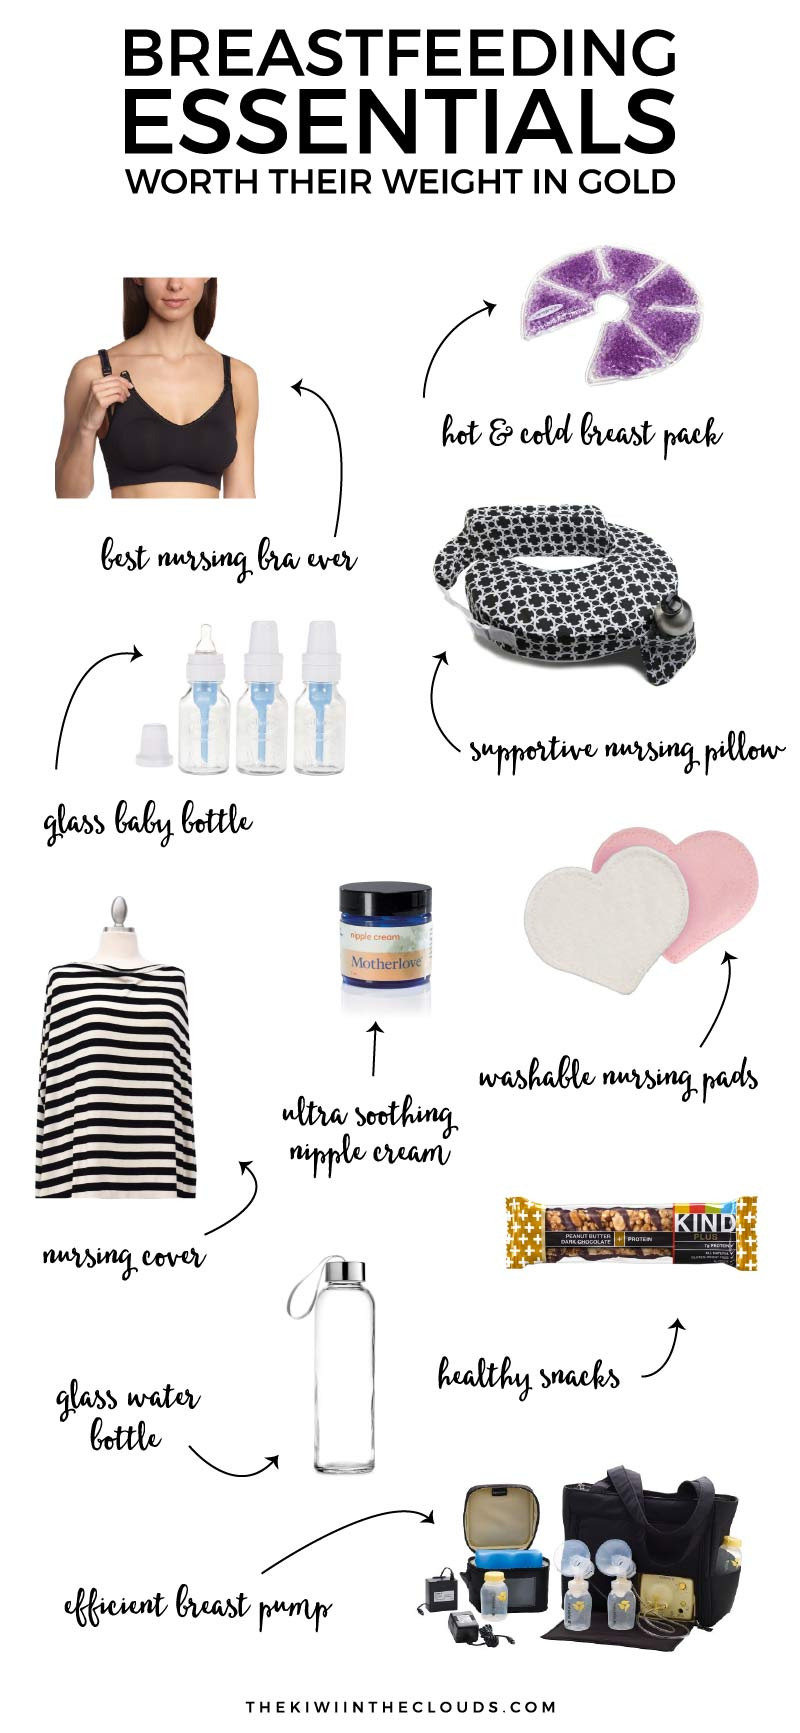 Set yourself up for nursing success with these ten breastfeeding essentials that are worth their weight in gold!! These products are insanely useful and are definitely breastfeeding must haves.